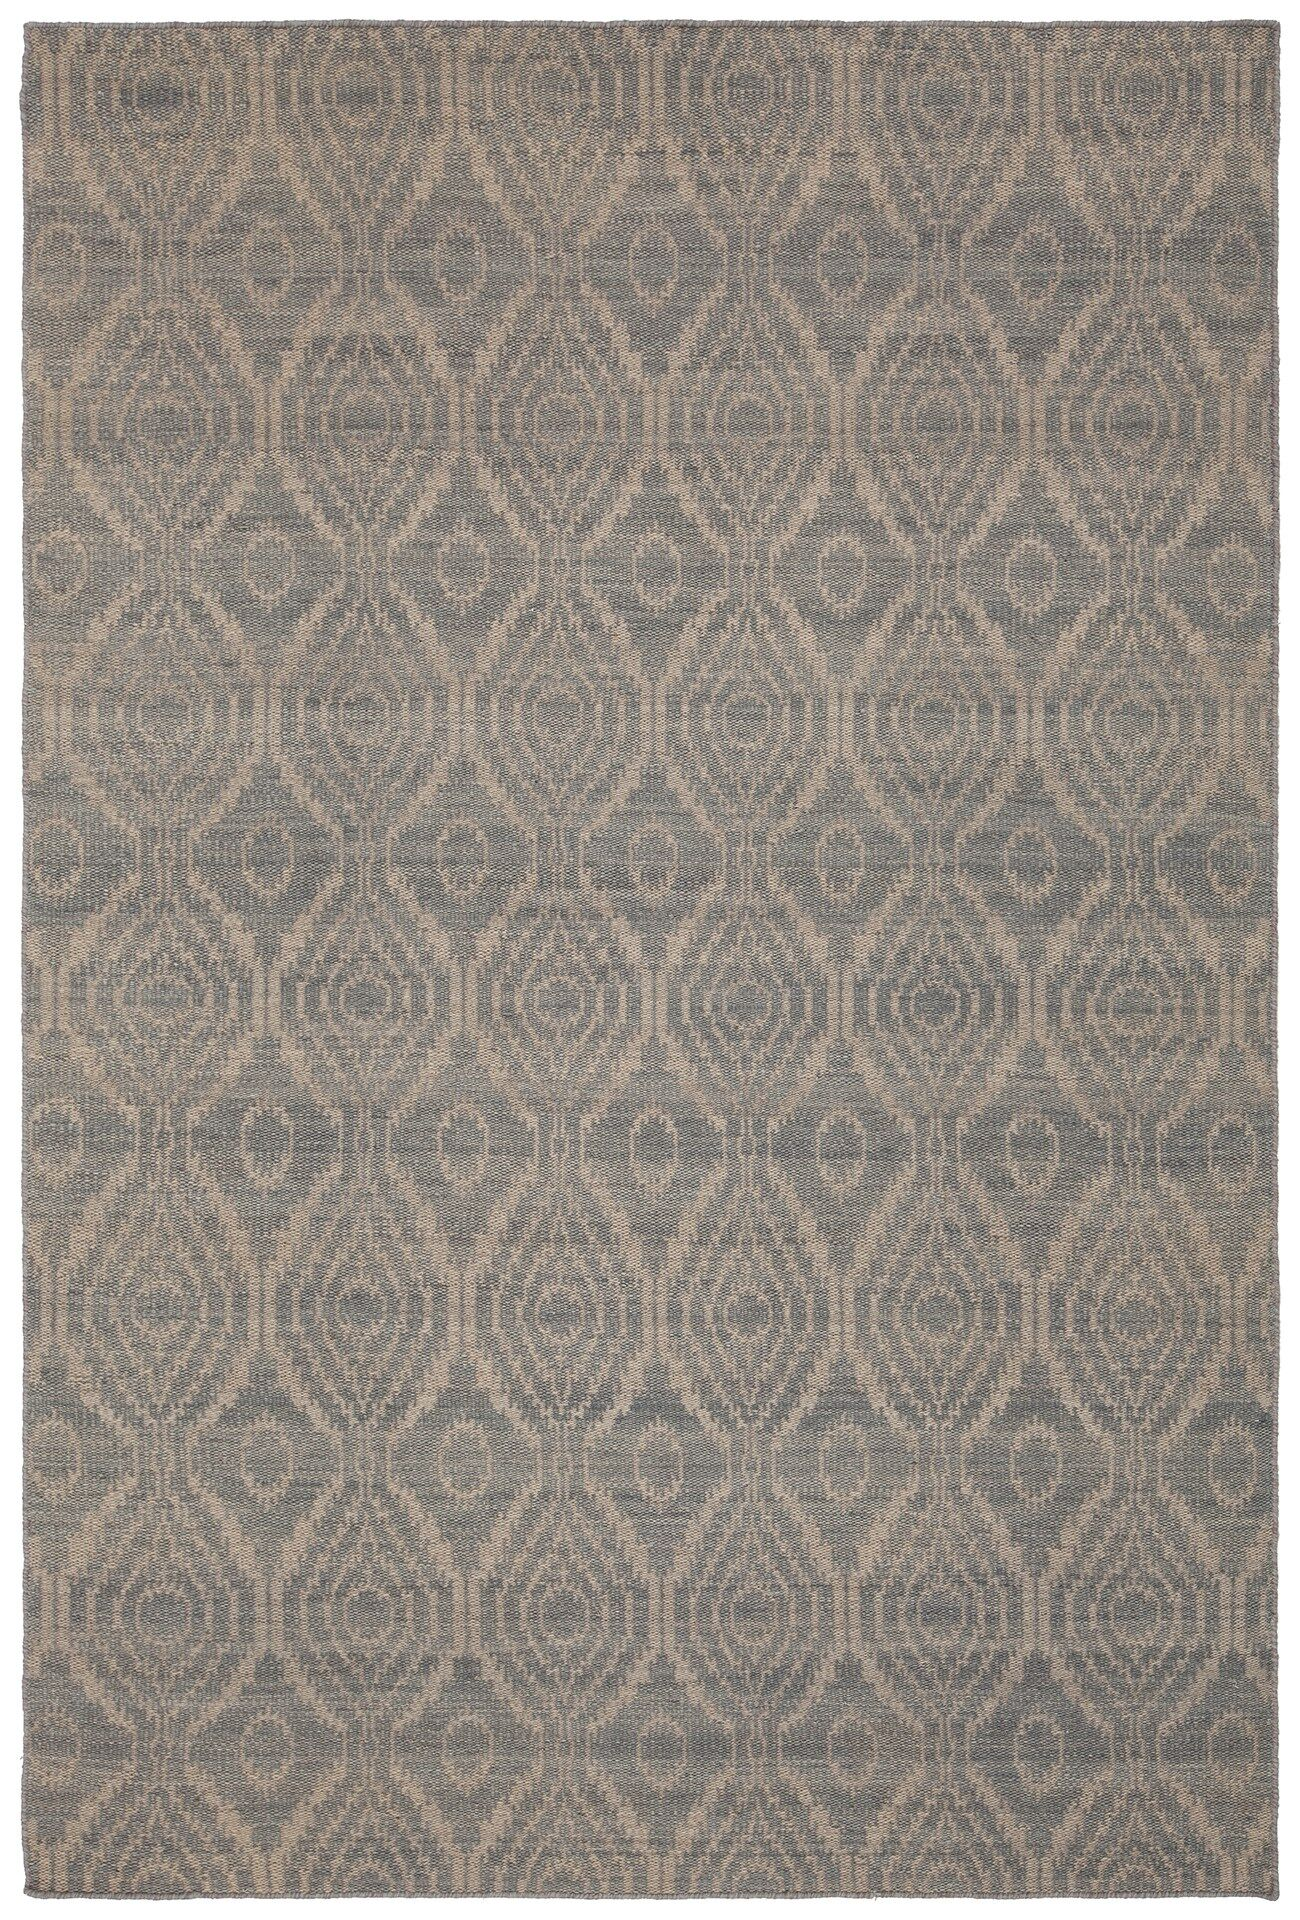 Jones Hand-Woven Wool Beige Area Rug Rug Size: Rectangle 7'9